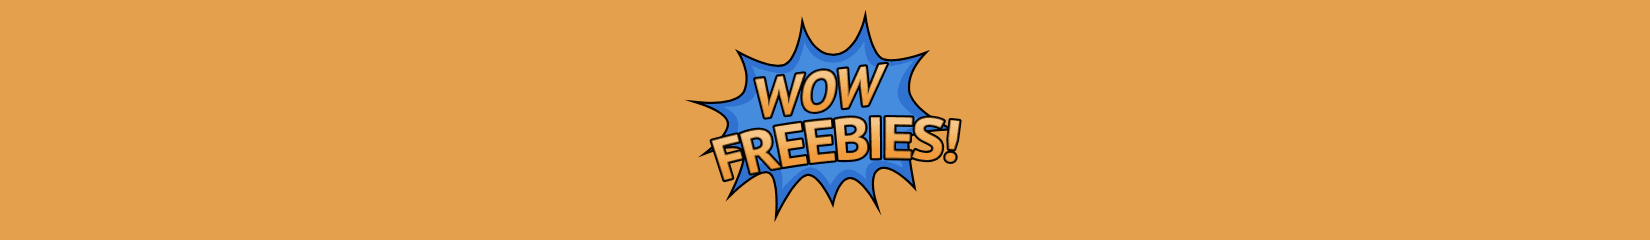 WOW Freebies new design banner